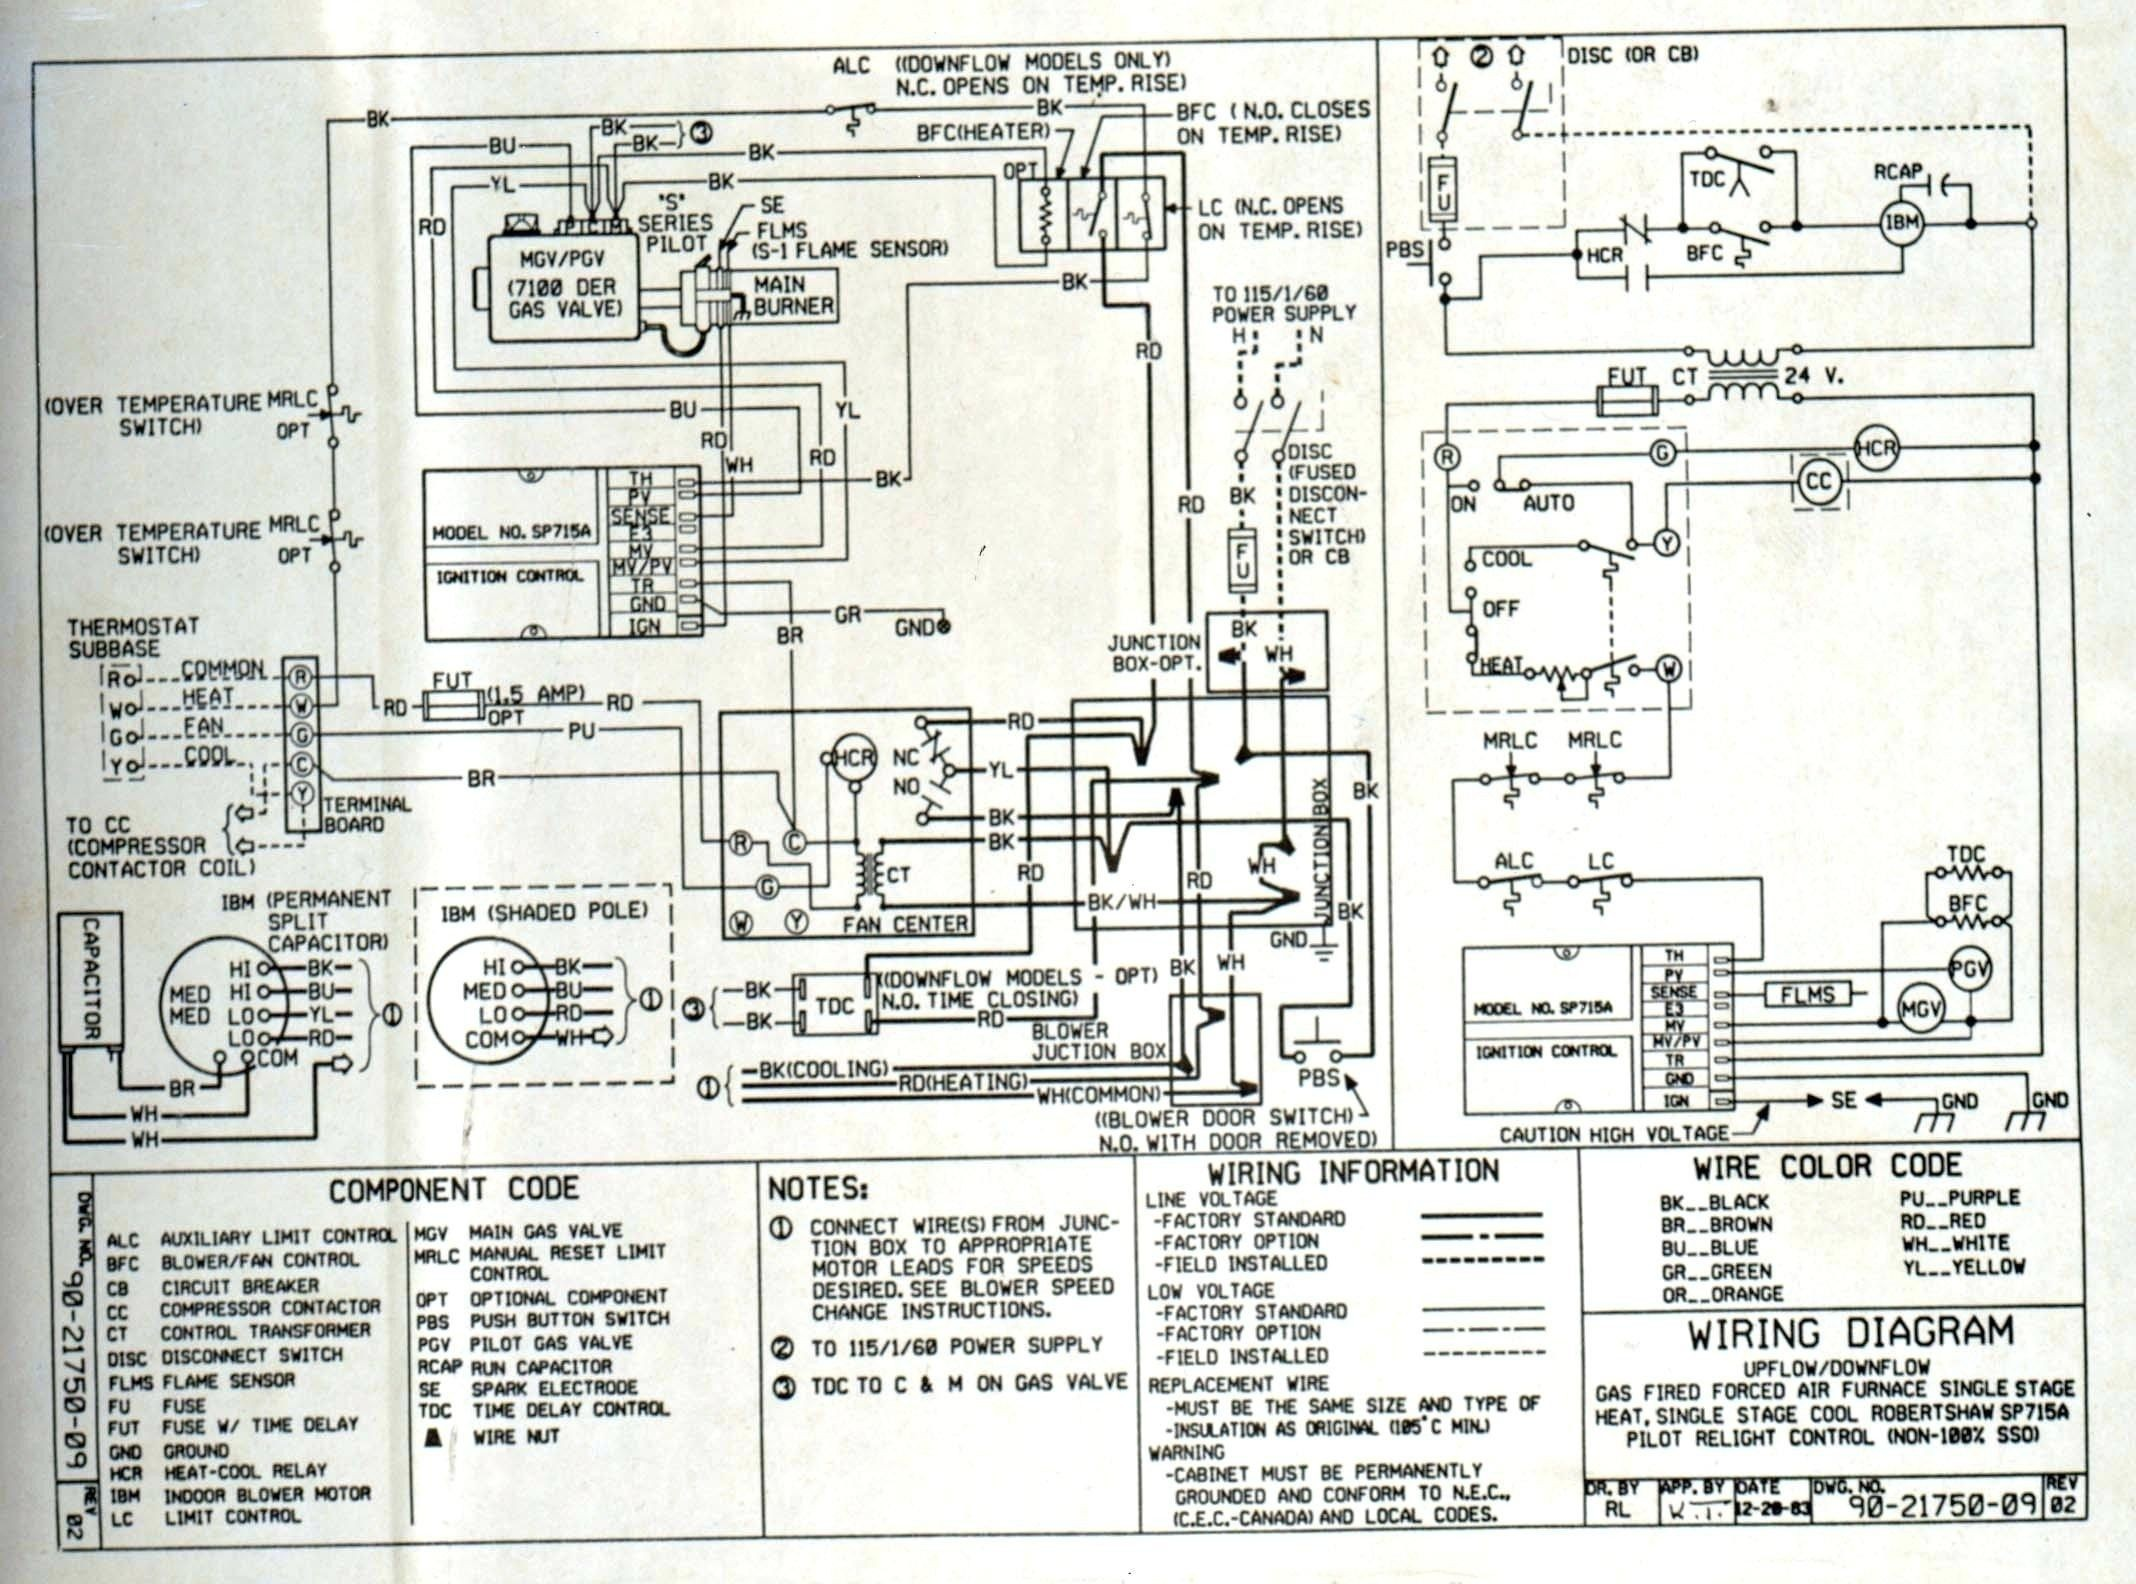 Schematic Of Rc Electric Motor Circuit 16 Wiring Diagram for Electric Fireplace Heater Of Schematic Of Rc Electric Motor Circuit